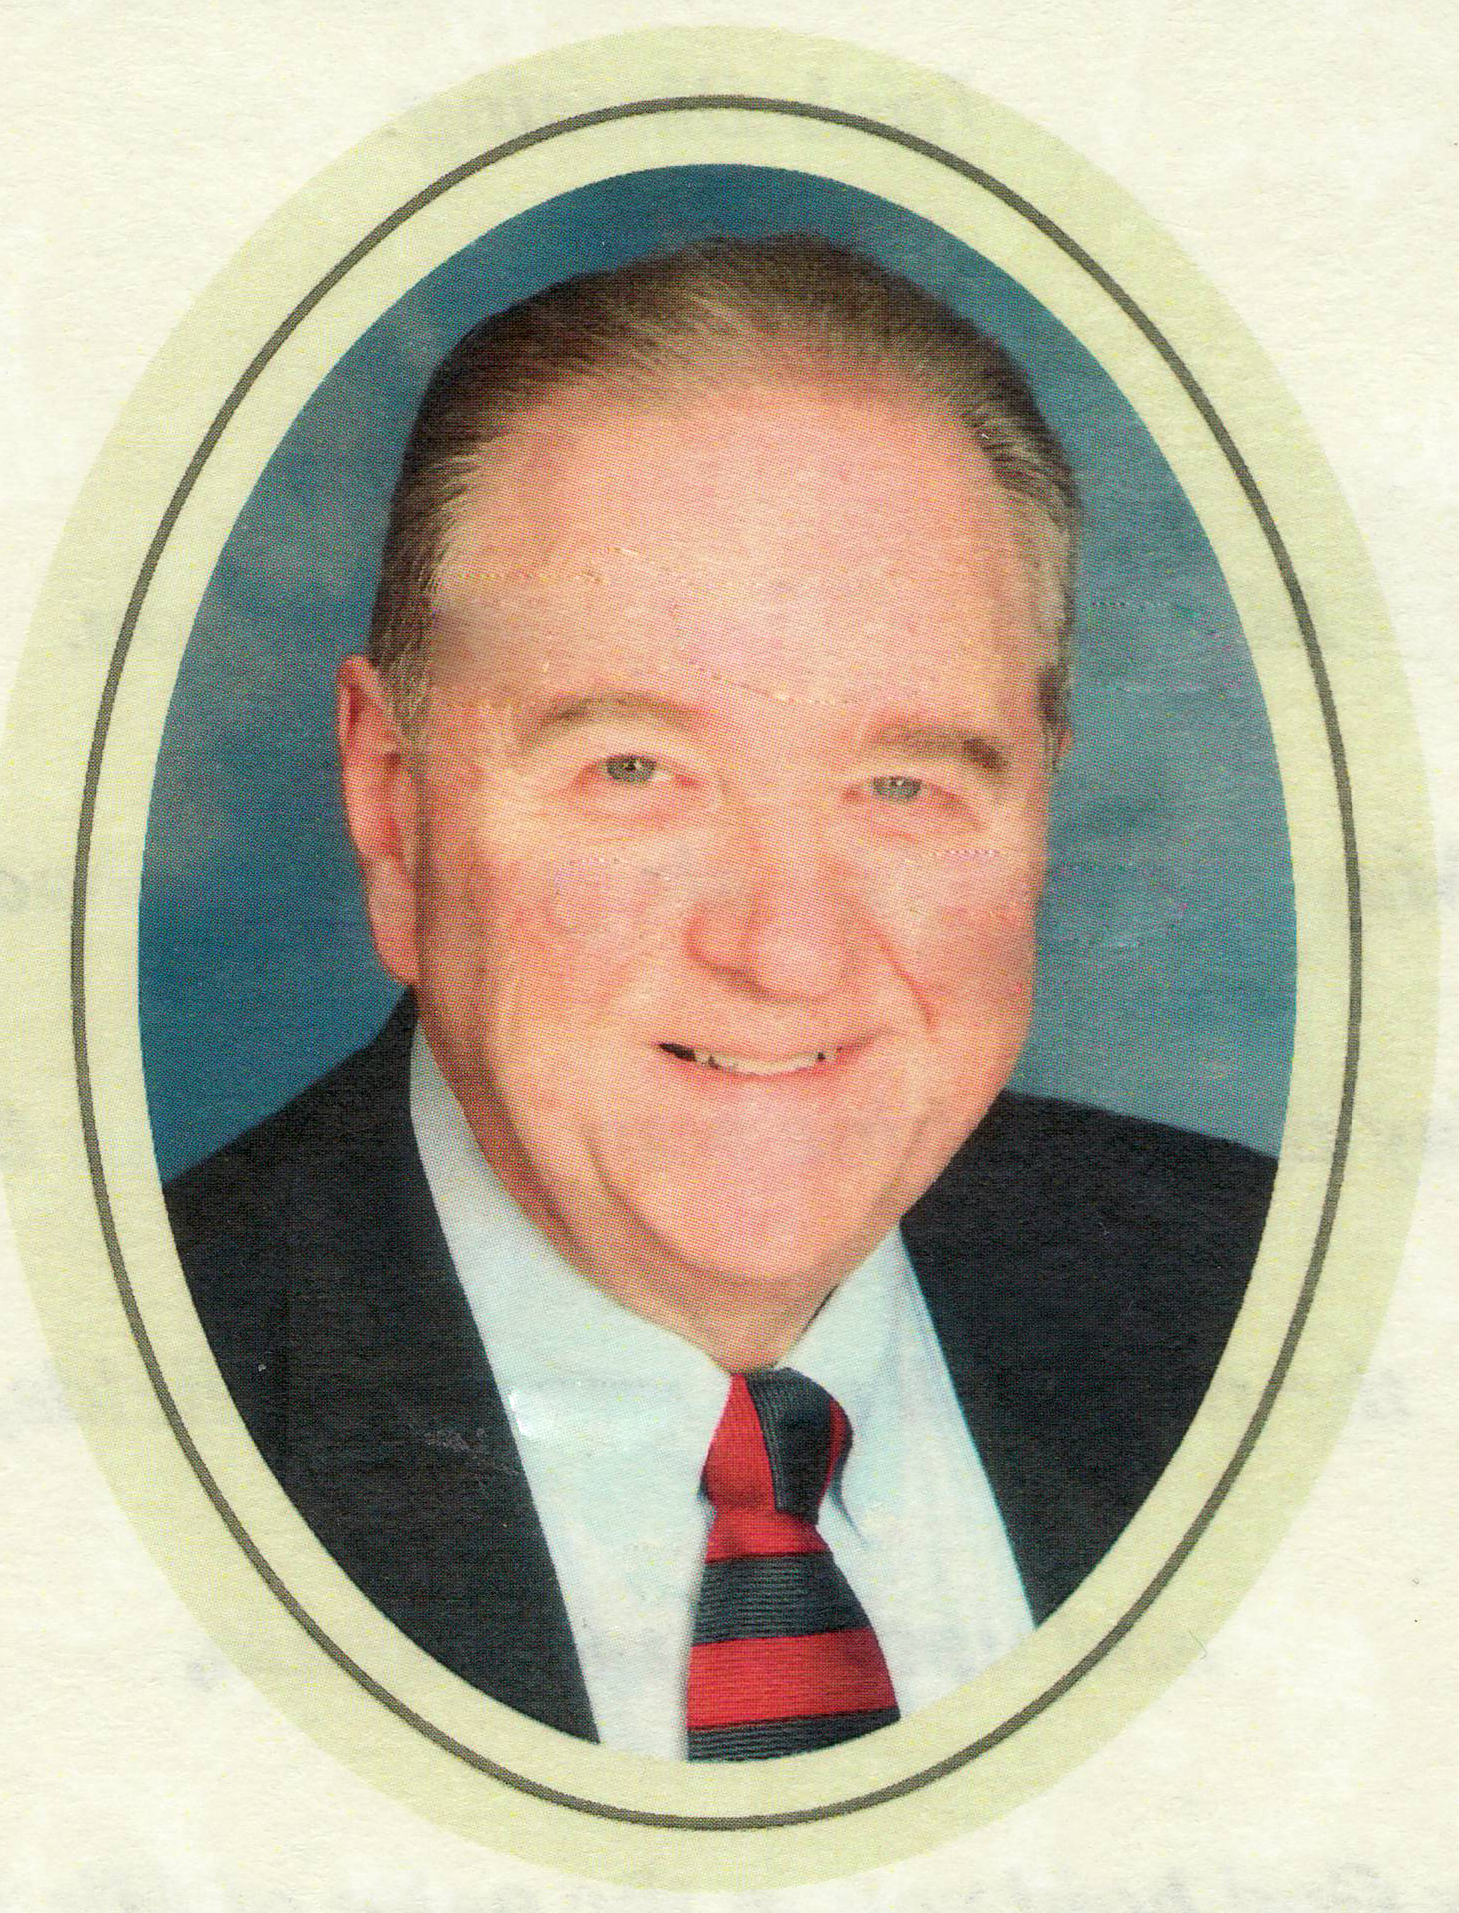 Donald P. Dougherty, Jr. Memorial Fund Established at Community Foundation